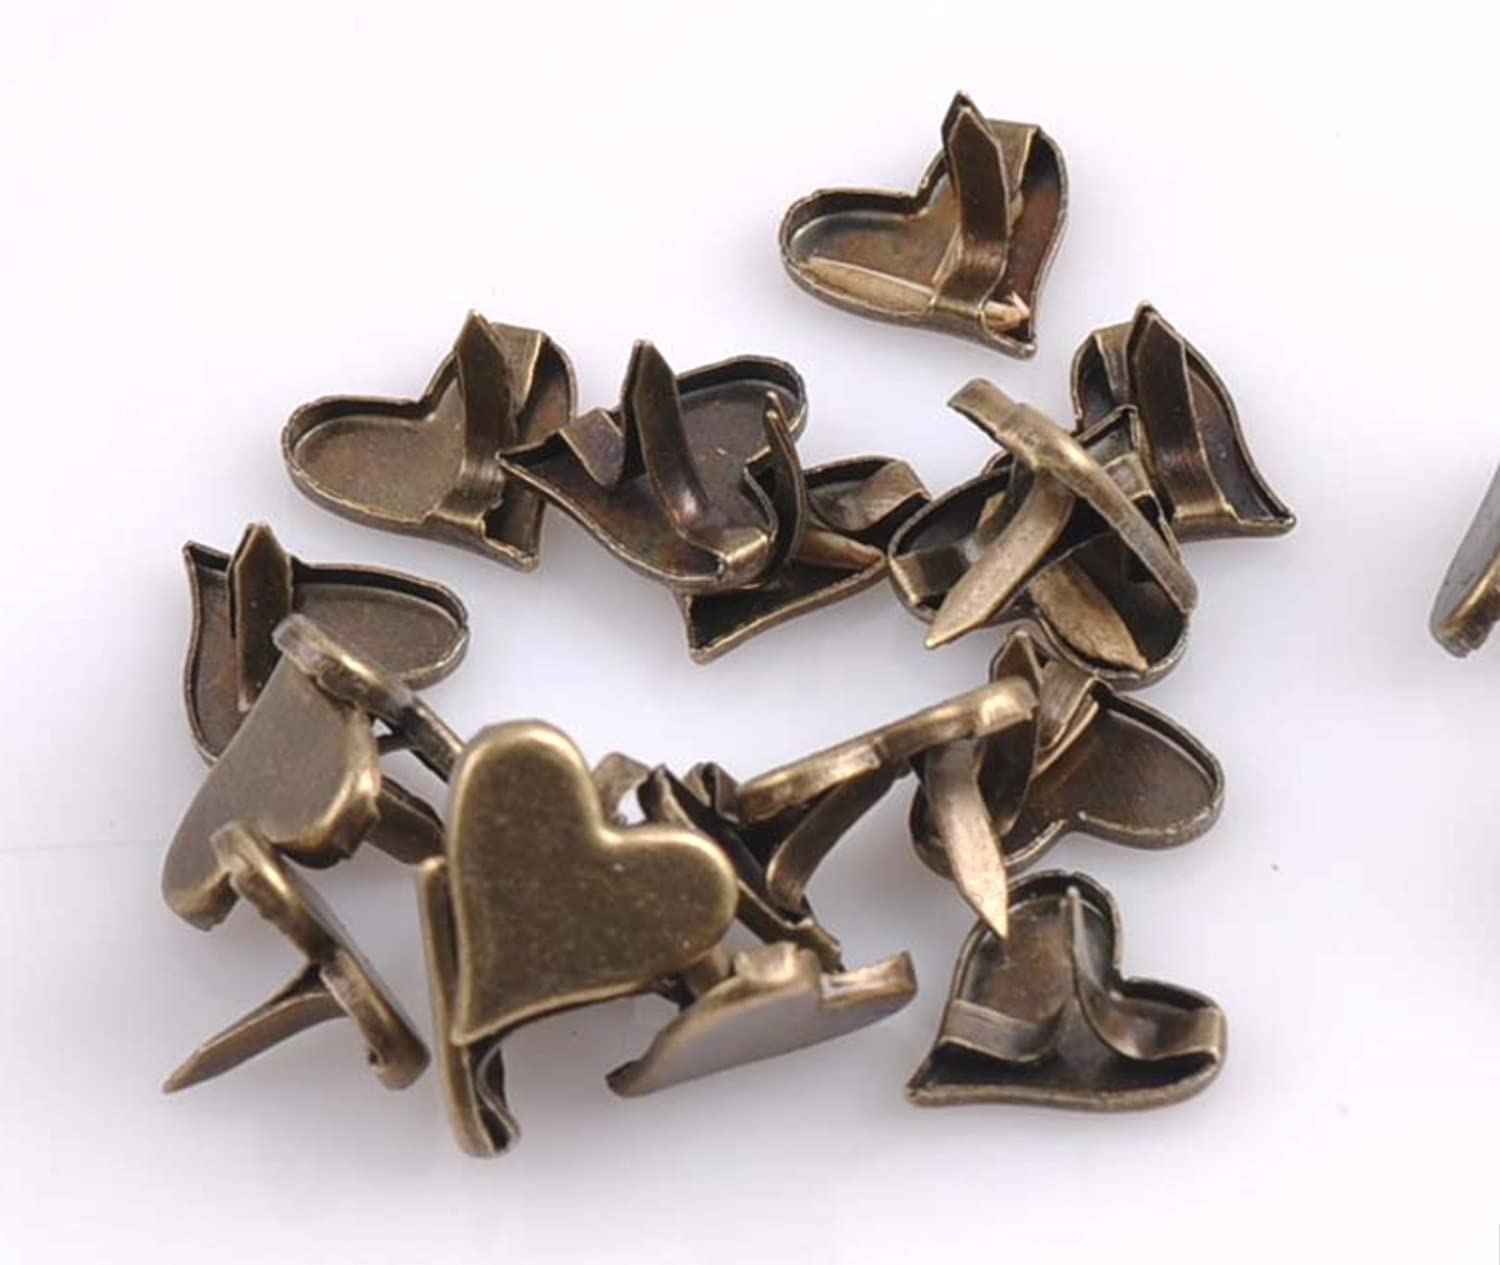 50pcs 11mm Antique Brass Heart Metal Brads Scrapbooking Craft Embellishment Card Making Decorative DIY Rivets Paper Fasteners DP032 Thailand